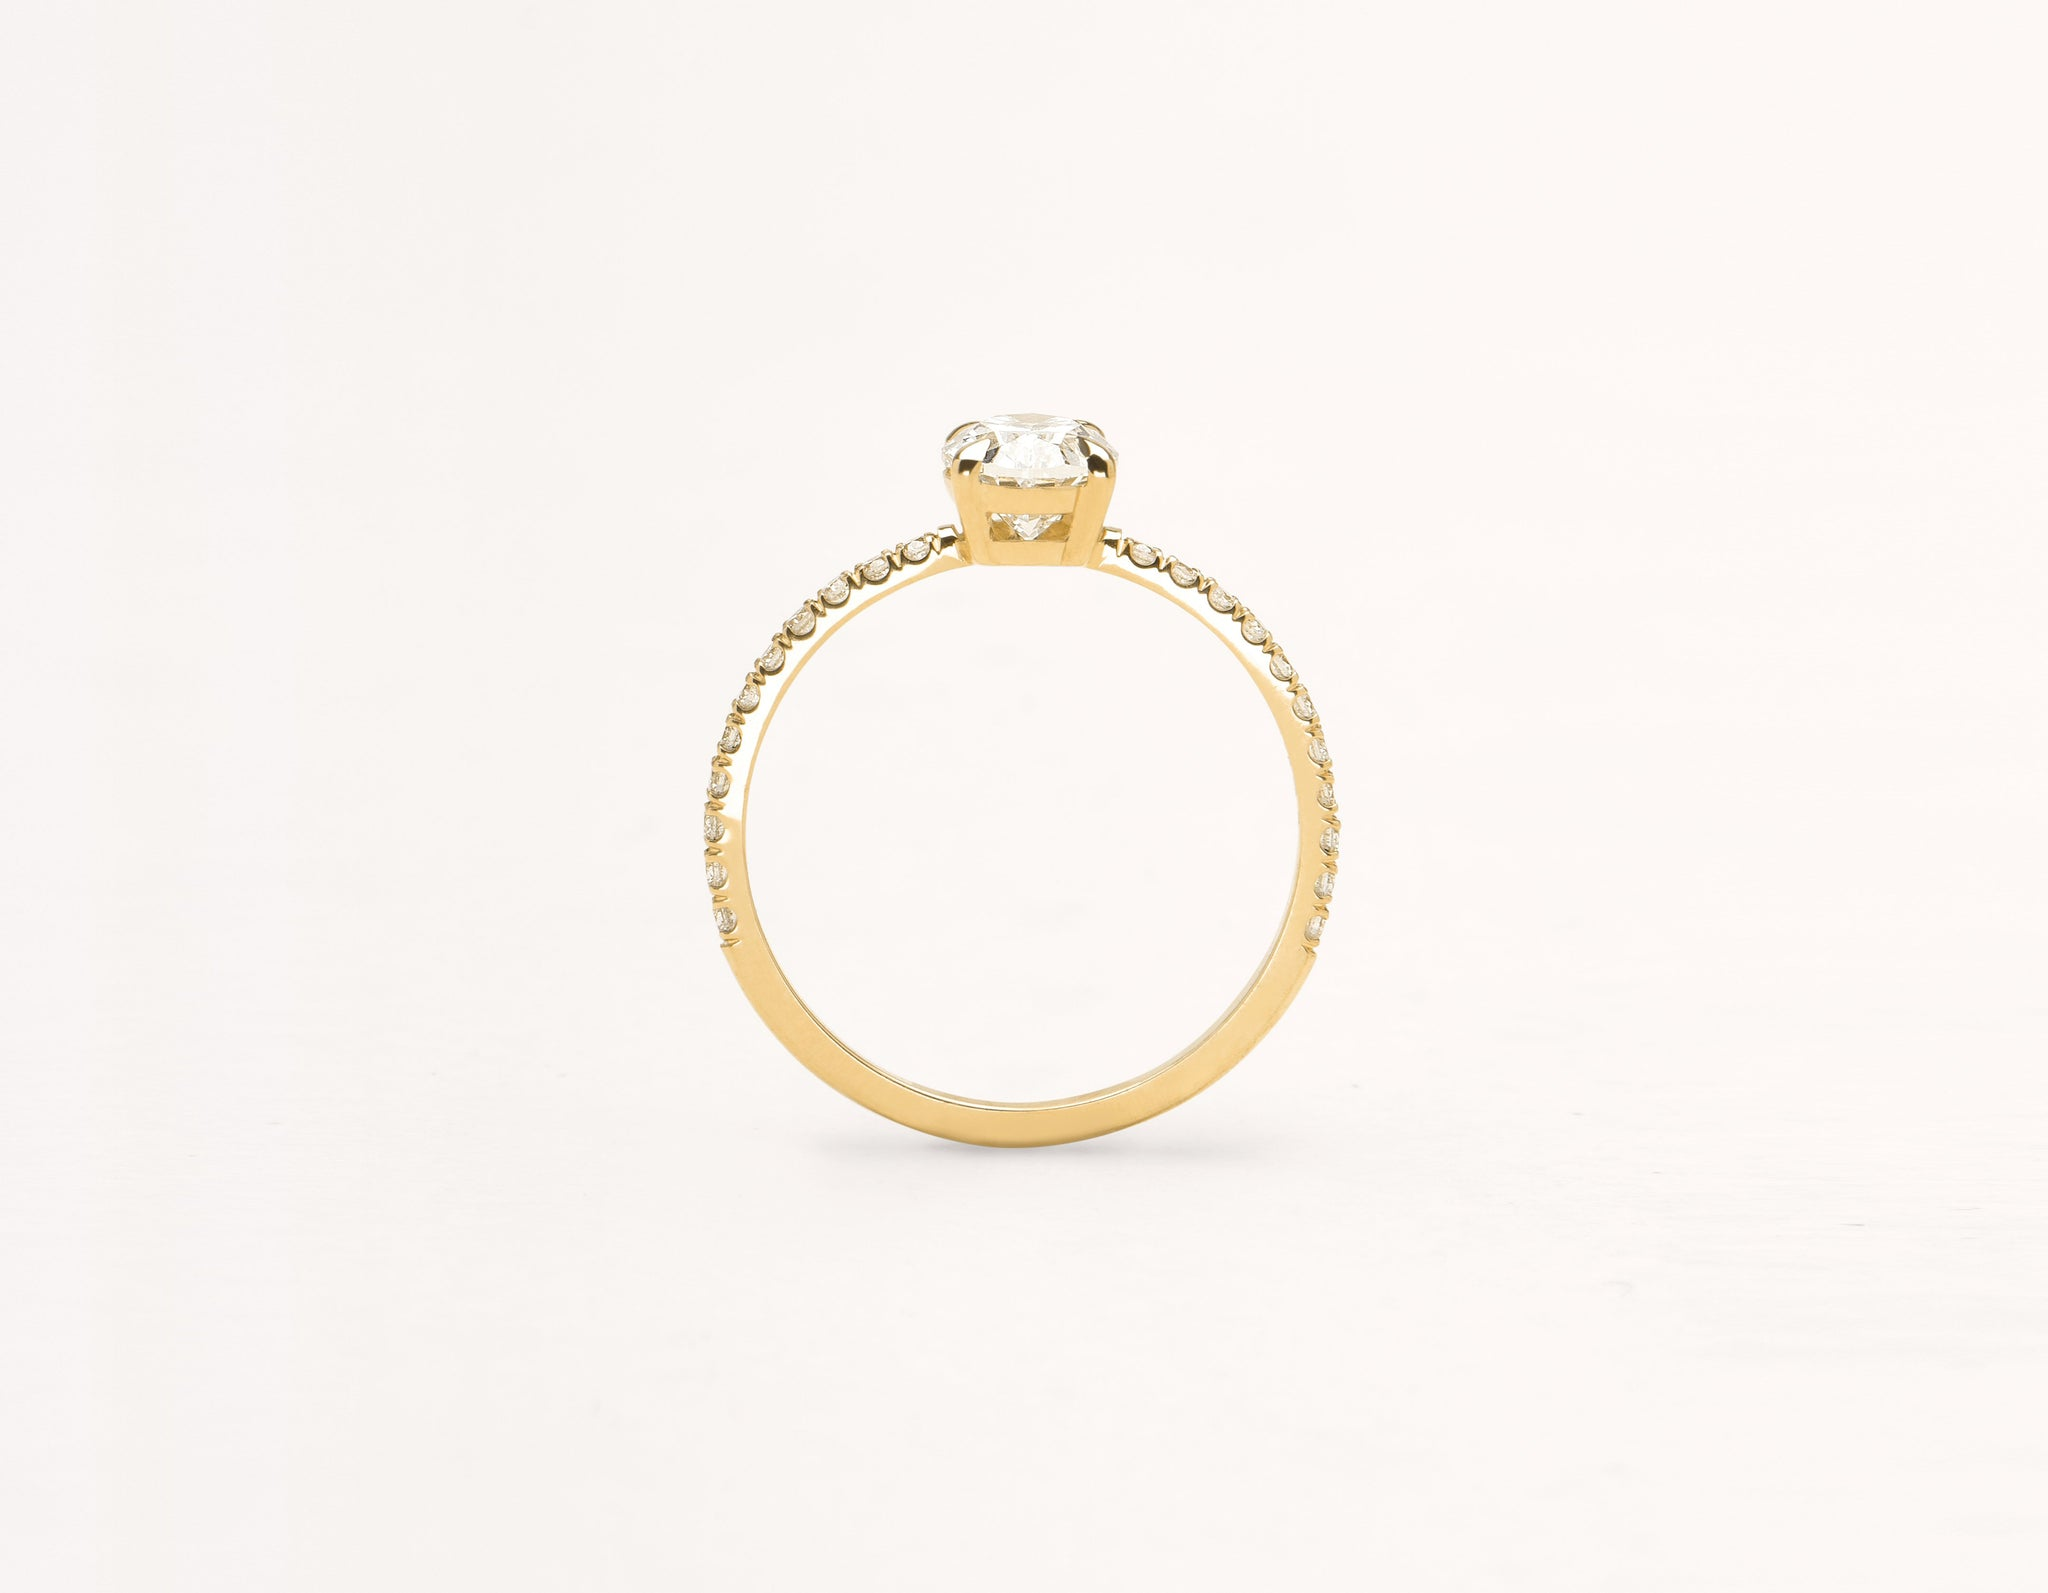 Vrai and Oro classic The Oval diamond pave engagement ring 18k solid yellow gold sustainable jewelry